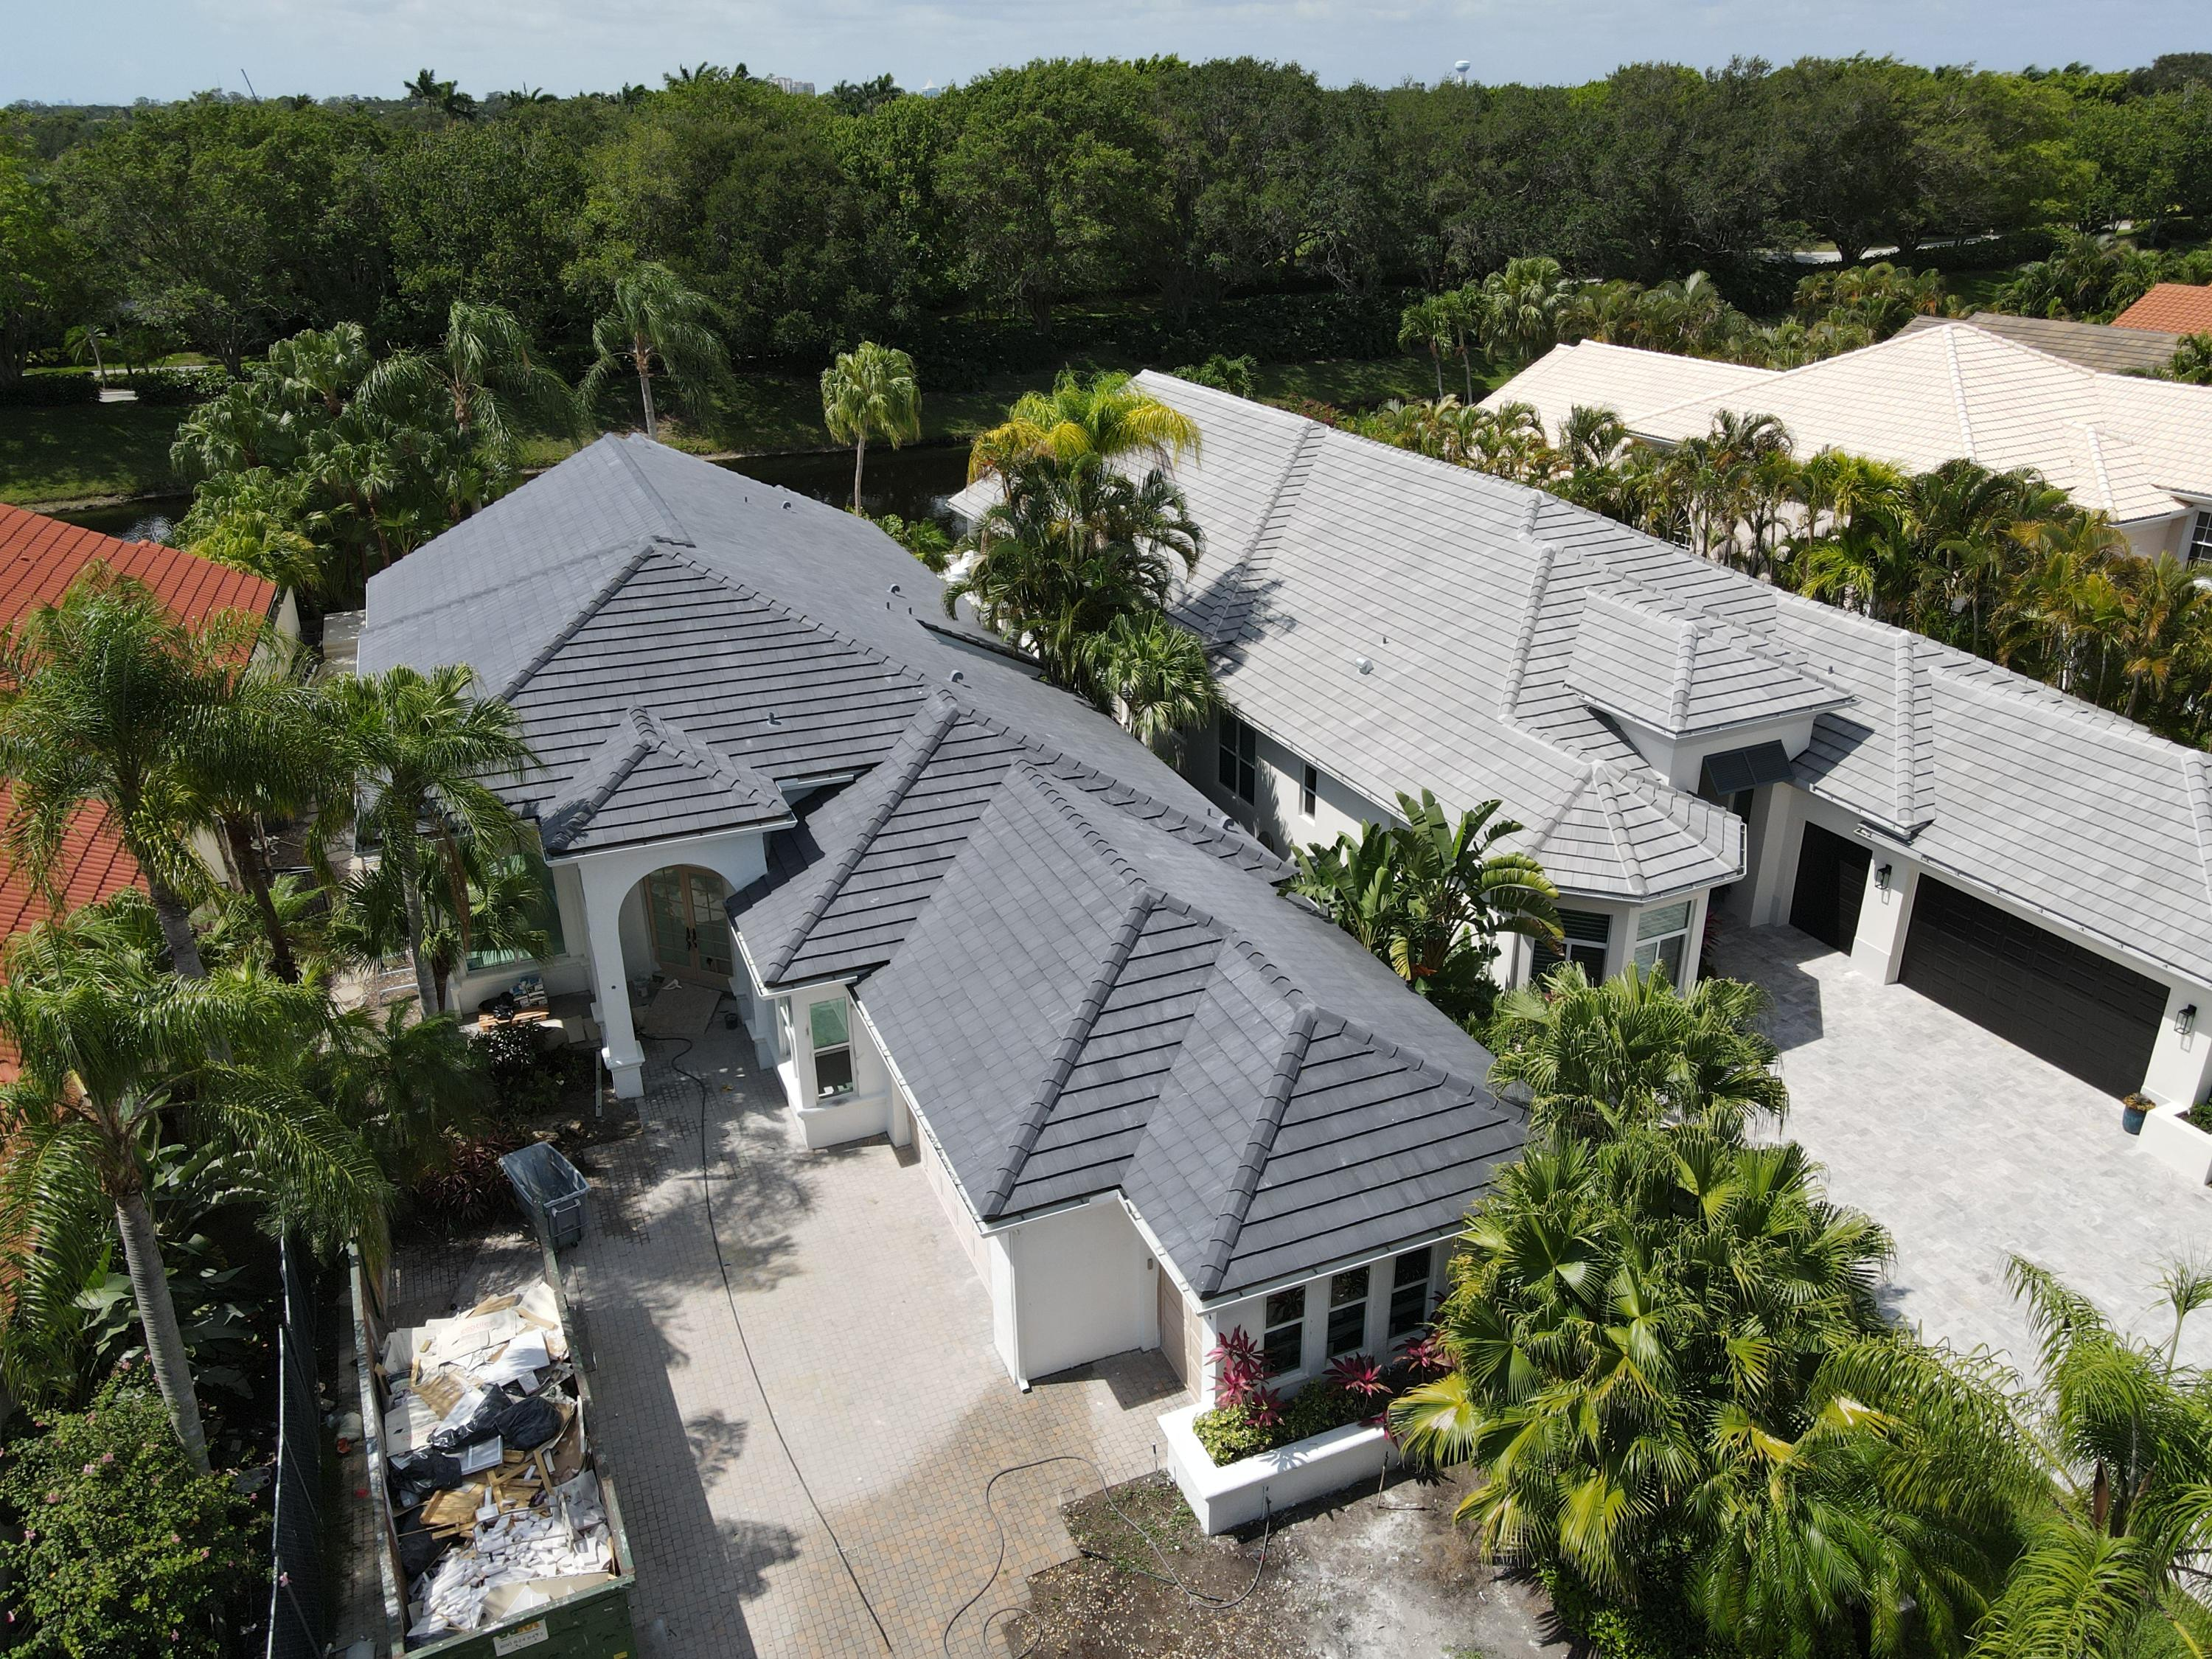 "Exquisite completely renovated rare Barbados model with serene water views, located in the luxury community of Frenchman's Creek Beach & Country Club.This open concept home boasts high ceilings, 2 bedrooms with a den,3.1baths,2.5 car garage with pool & spa.Spacious size master suite includes two walk in closets, large designer bathroom & connecting cabana bath that leads to your own private oasis. Upgrades include:new roof,hurricane impact doors & windows, A/C units,insulation,drywall,luxury kitchen w/ top-of- the-line appliances(please click More for full list.) Natural light illuminates and enhances every room. Luxury Country Club living at its finest with golf, tennis, full spa, multiple restaurants, state of the art fitness facility & Private Beach Club. Close Proximity to I-95. Brand new upgrades include: -Concrete tile roof -Hurricane Impact windows and doors -Hurricane impact garage doors -Finished garage floor -Air conditioning units and duct work -Insulation & drywall -Insulated interior walls of the den for a quiet working space, media or  ""zoom"" room.  -Overhead LED lighting -Kitchen with high end stainless steel Wolf and Subzero appliances, gas cook top with sleek hood, wall oven, microwave, dishwasher, 48' subzero refrigerator, custom cabinetry with upper & lower lighting, quartz countertops, 9 ft island with storage underneath, pop up electrical outlets and pendant lighting -Custom bar area with wine cooler, ice maker, and storage for entertaining -Porcelain tile throughout first floor -Custom base boards and casing throughout  -3.1 custom baths total with Toto toilets  -Quality interior doors & hardware throughout -Circular paver driveway -Matching front & rear exterior lighting  -New gas pool heater -Travertine pool deck -Modern tile & refinished pool & spa -Fresh interior & exterior paint -Low maintenance, modernized landscaping"